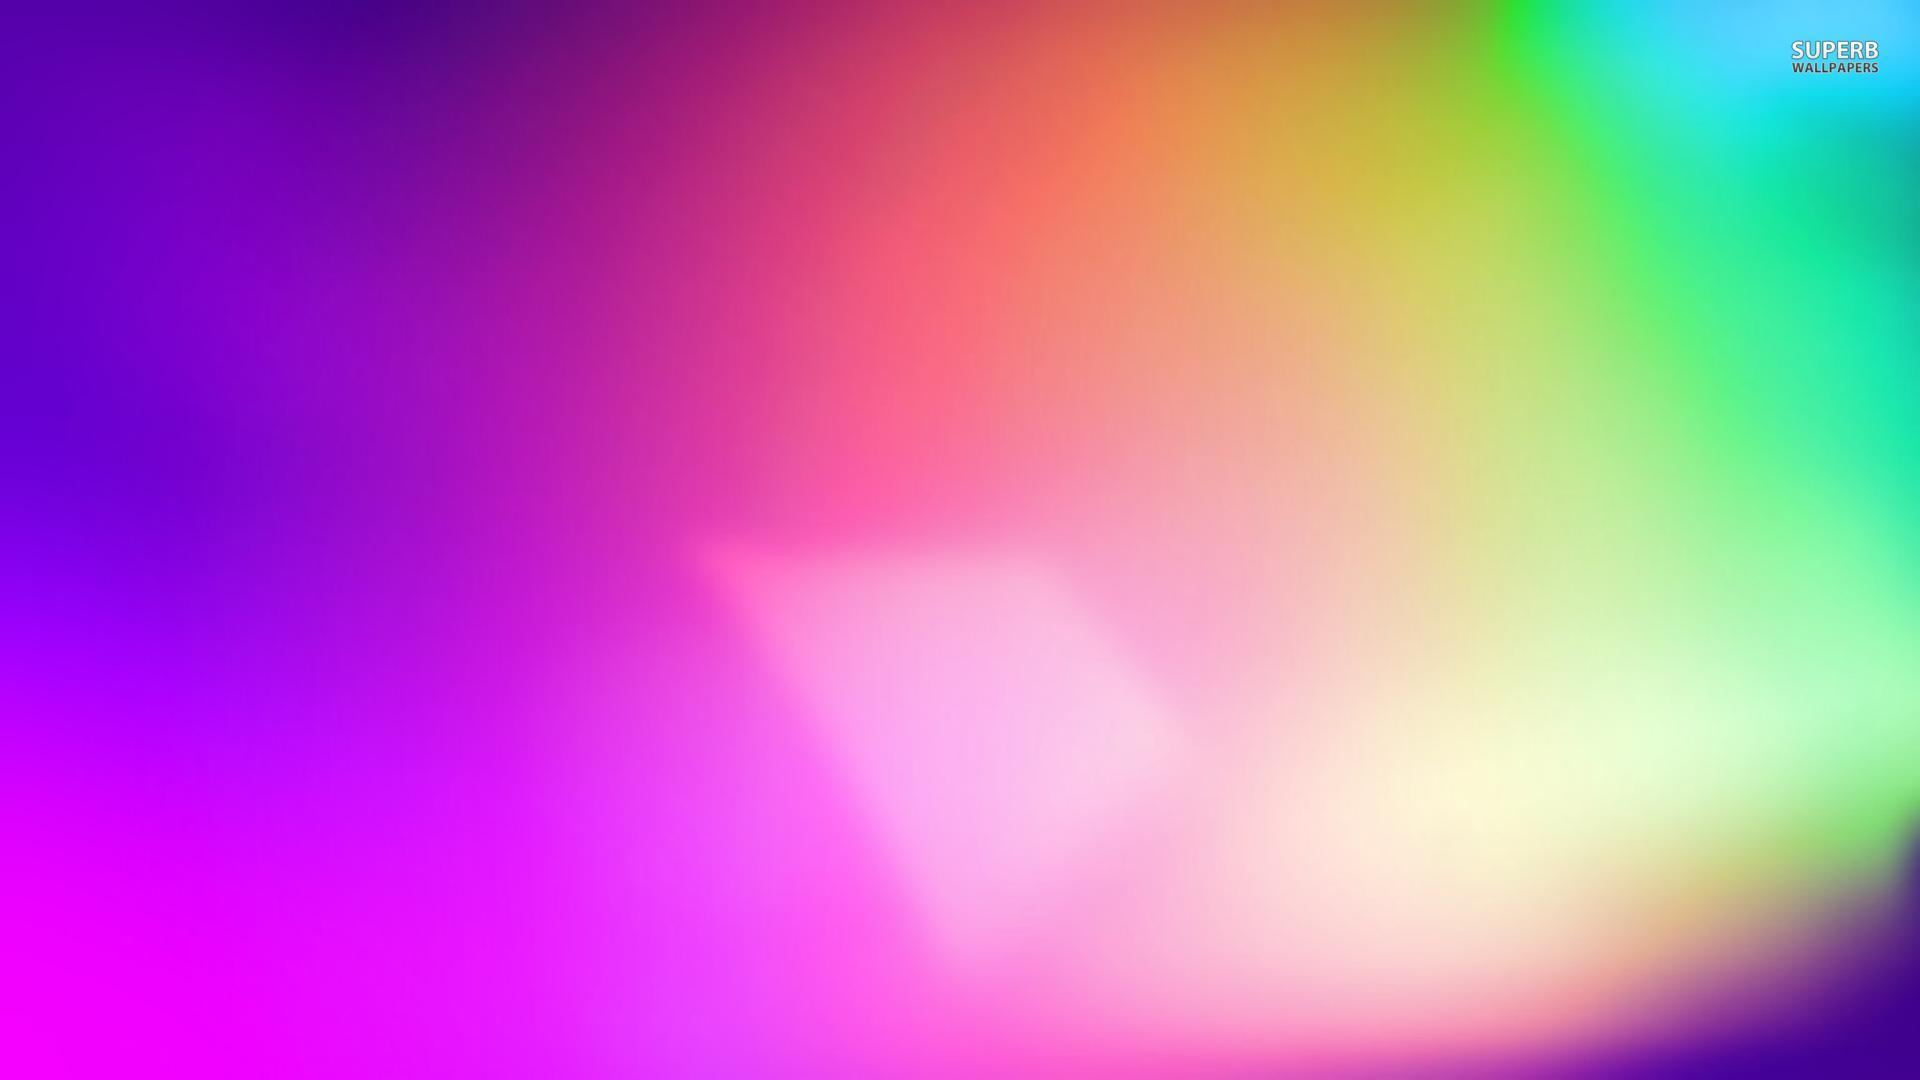 Gradient wallpapers wallpaper cave - Vibrant background ...